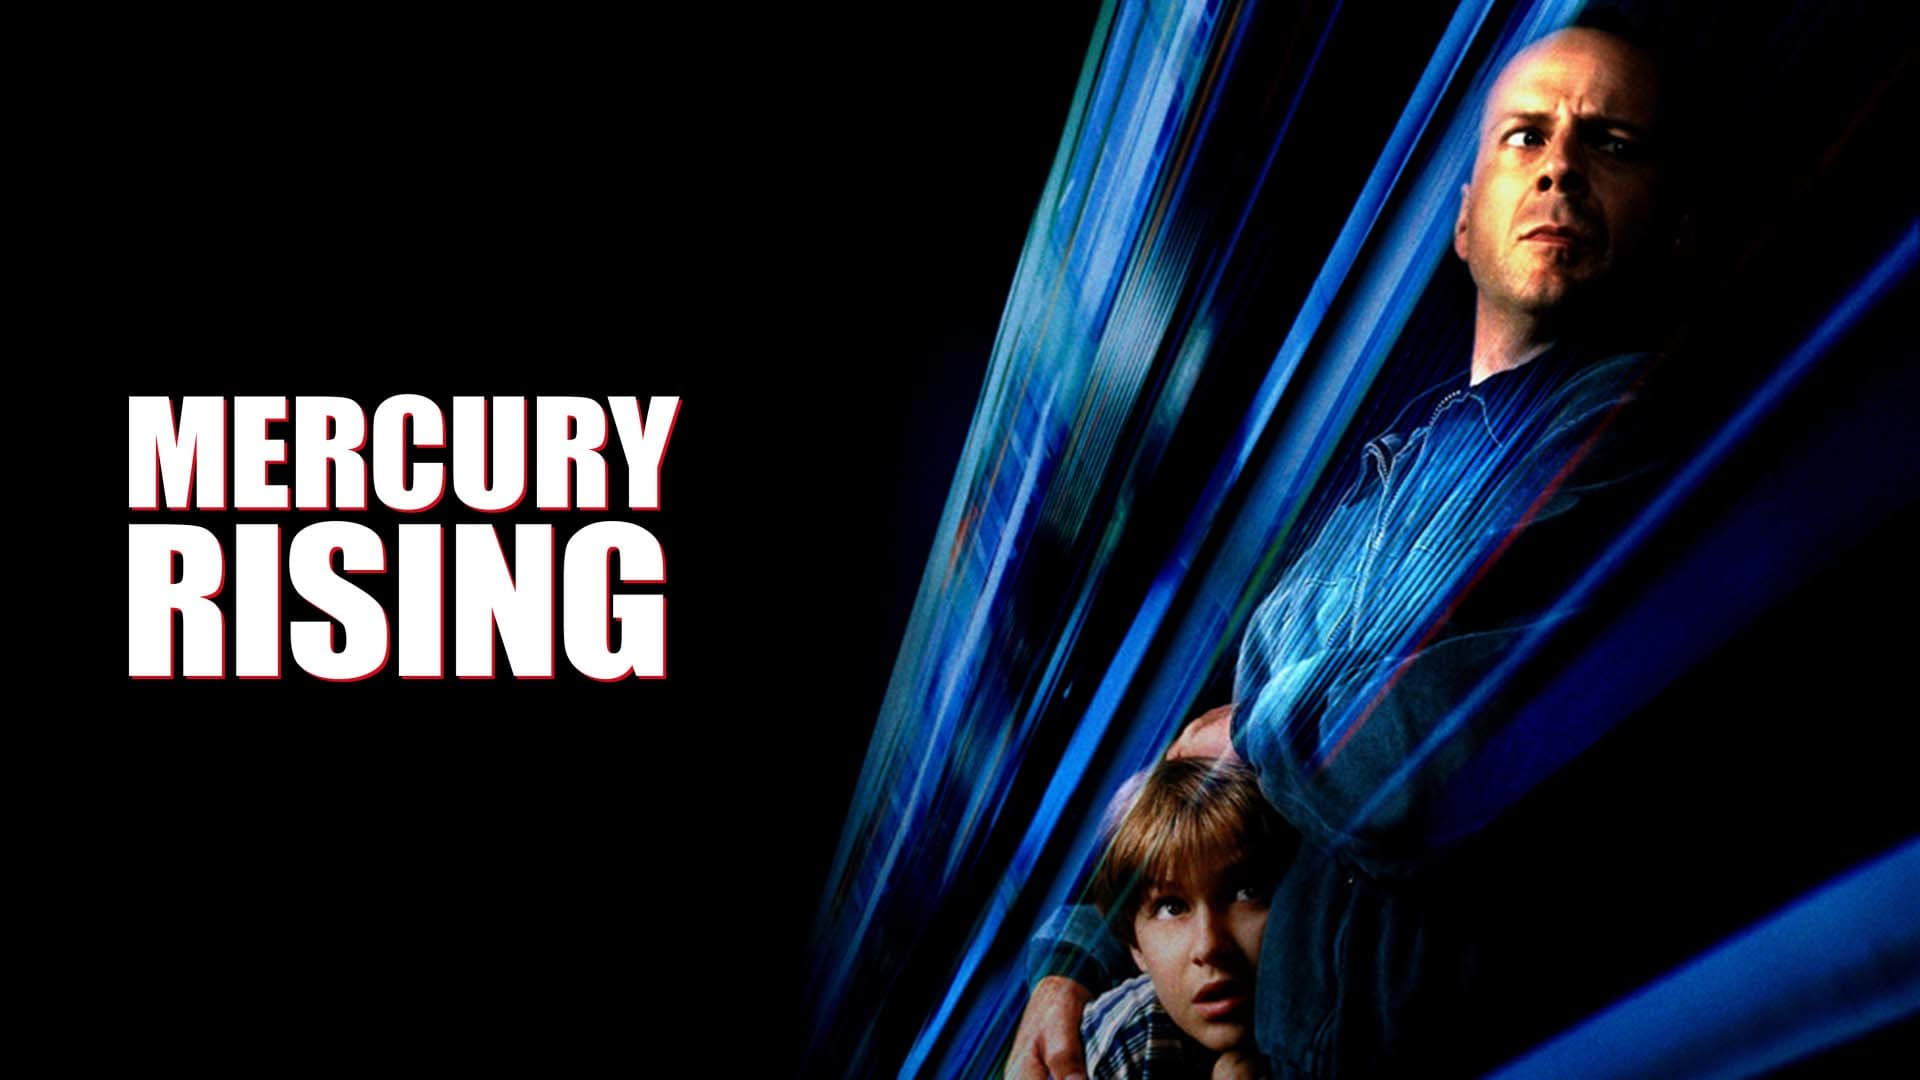 Watch Mercury Rising Online Free Full Movie on Popcorn Time